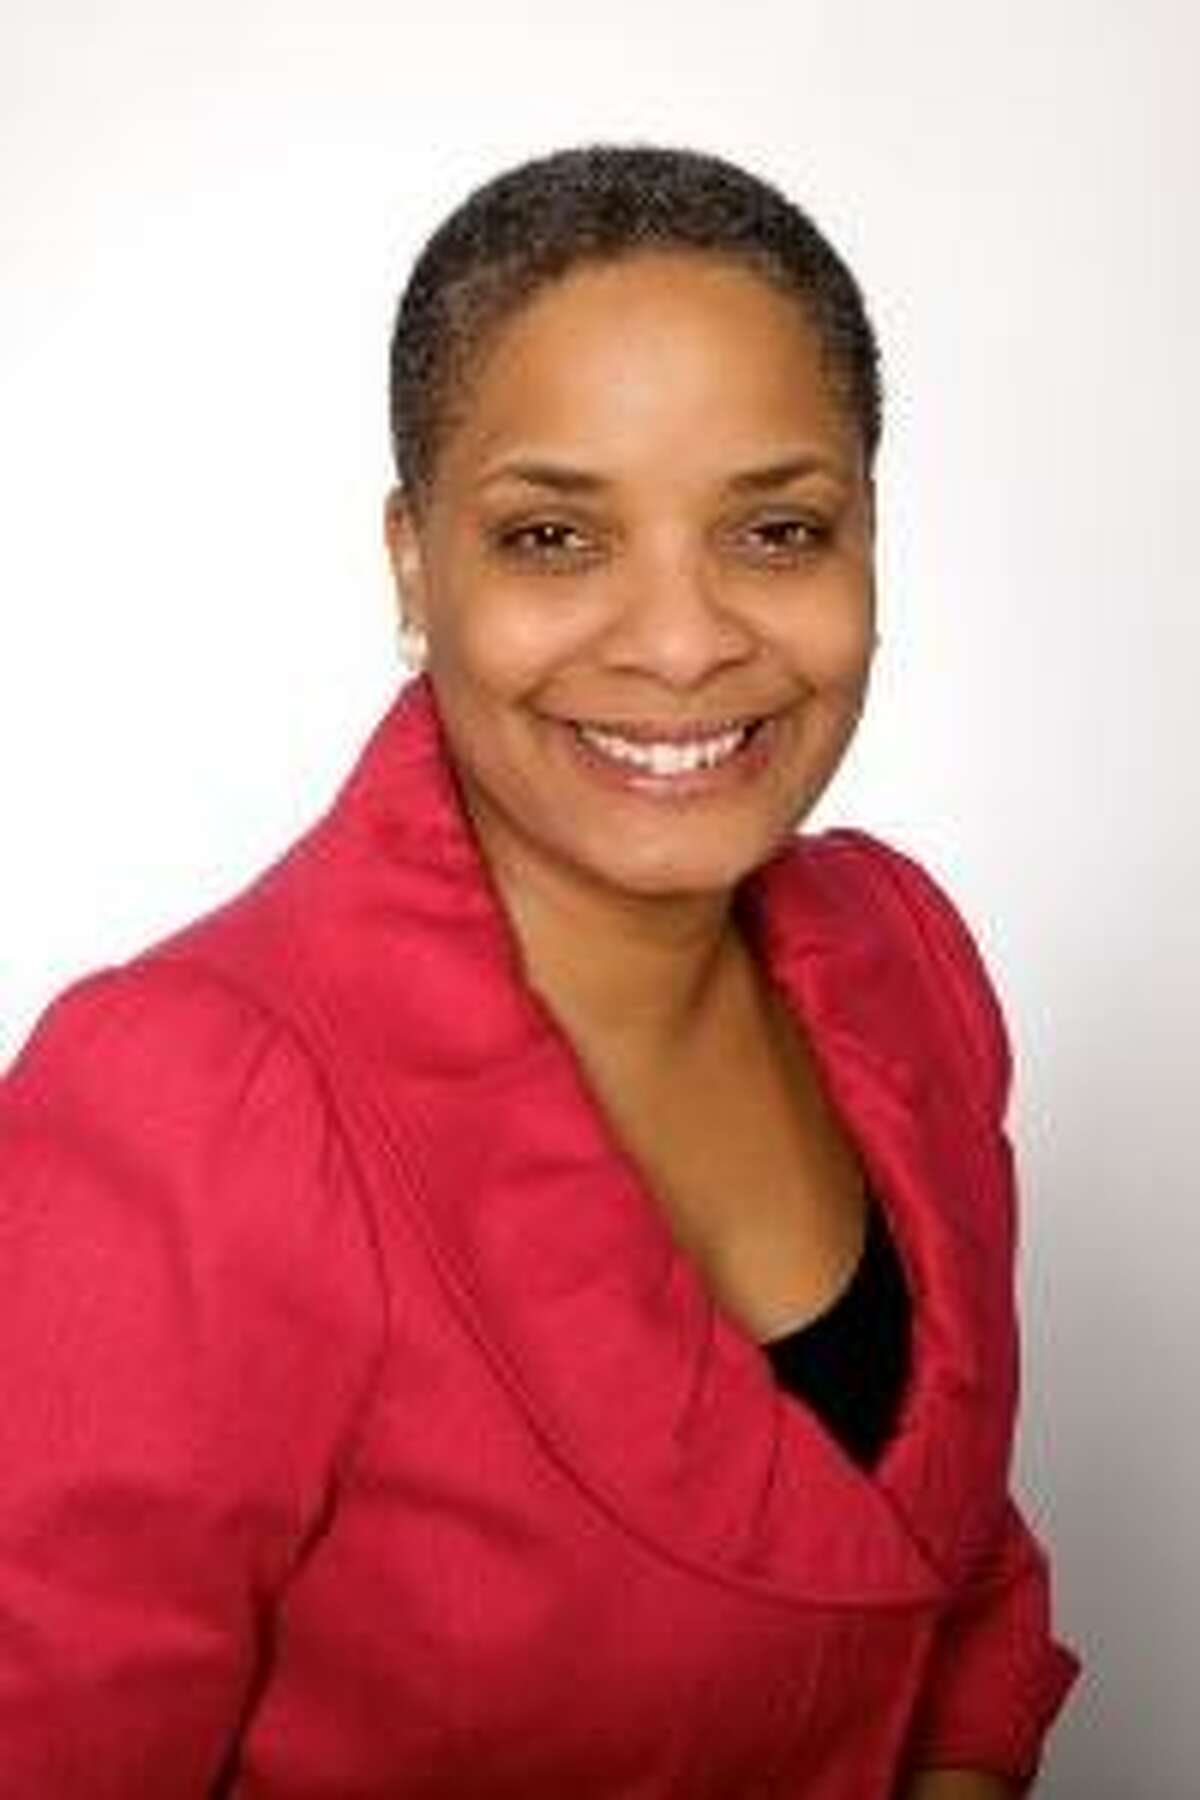 Stephanie Thomas hopes to run against incumbent state Rep. Gail Lavielle for the 143rd House District.